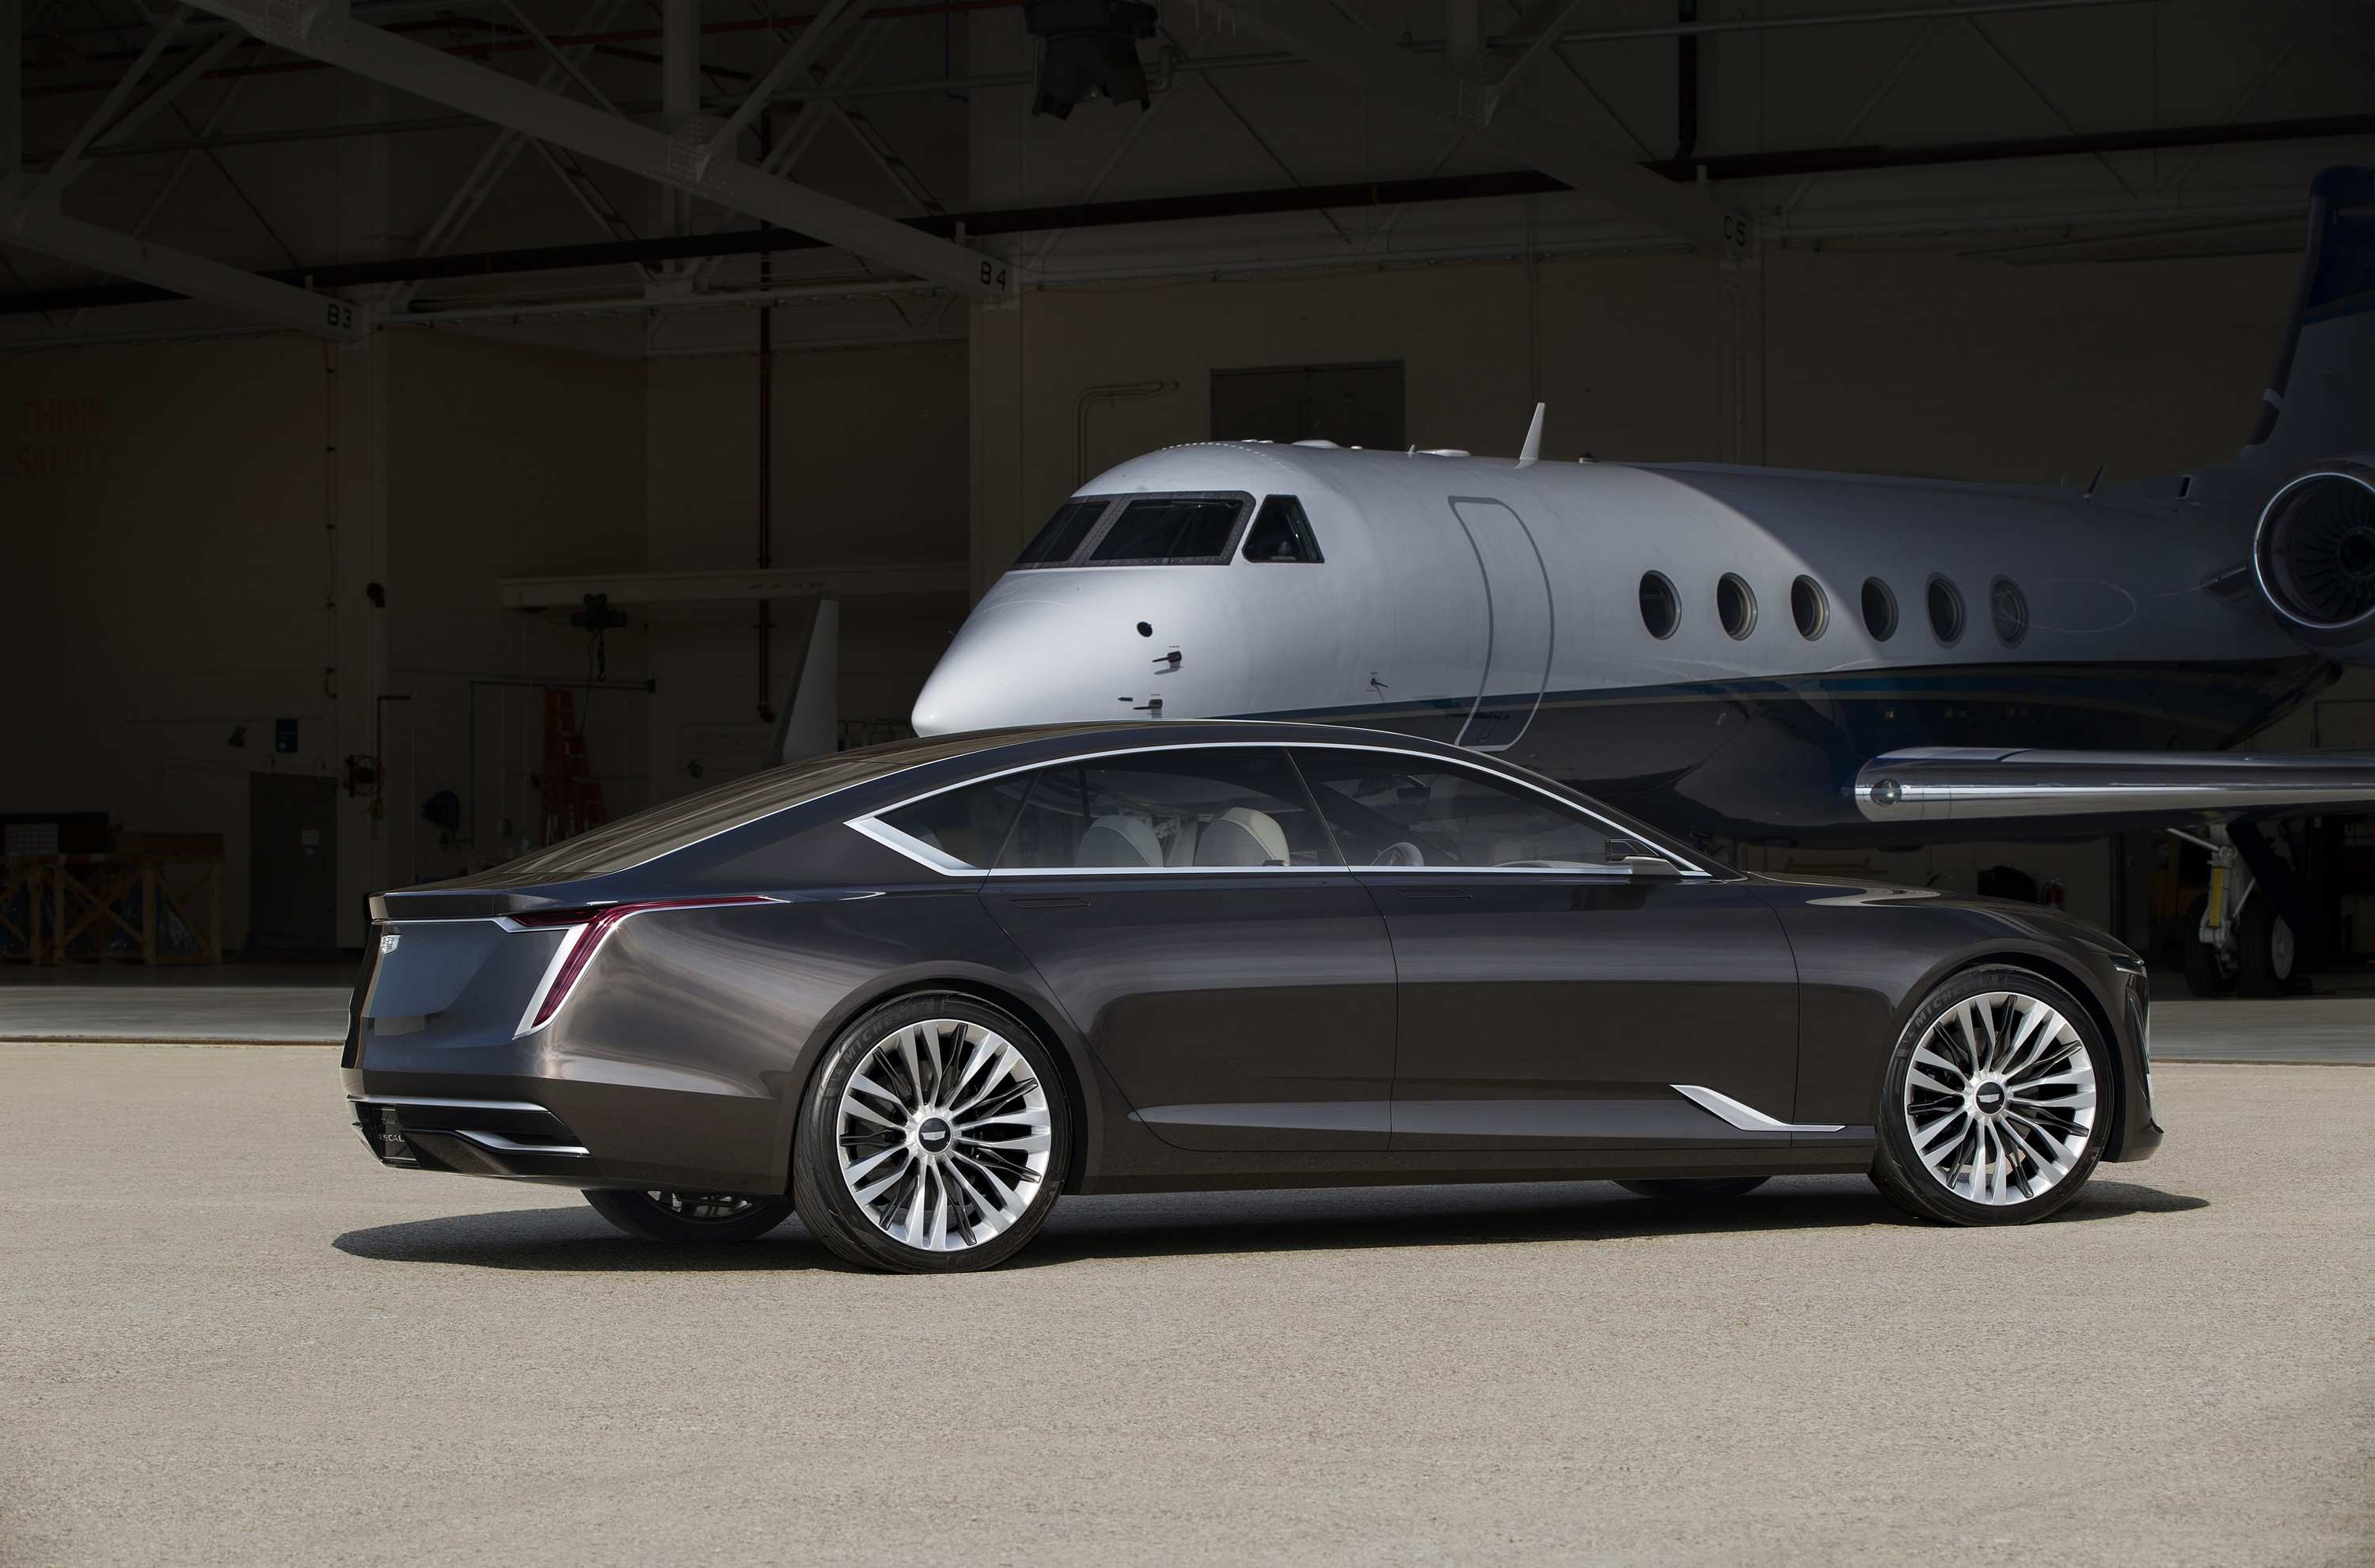 64 Concept of 2020 Cadillac LTS Spy Shoot by 2020 Cadillac LTS